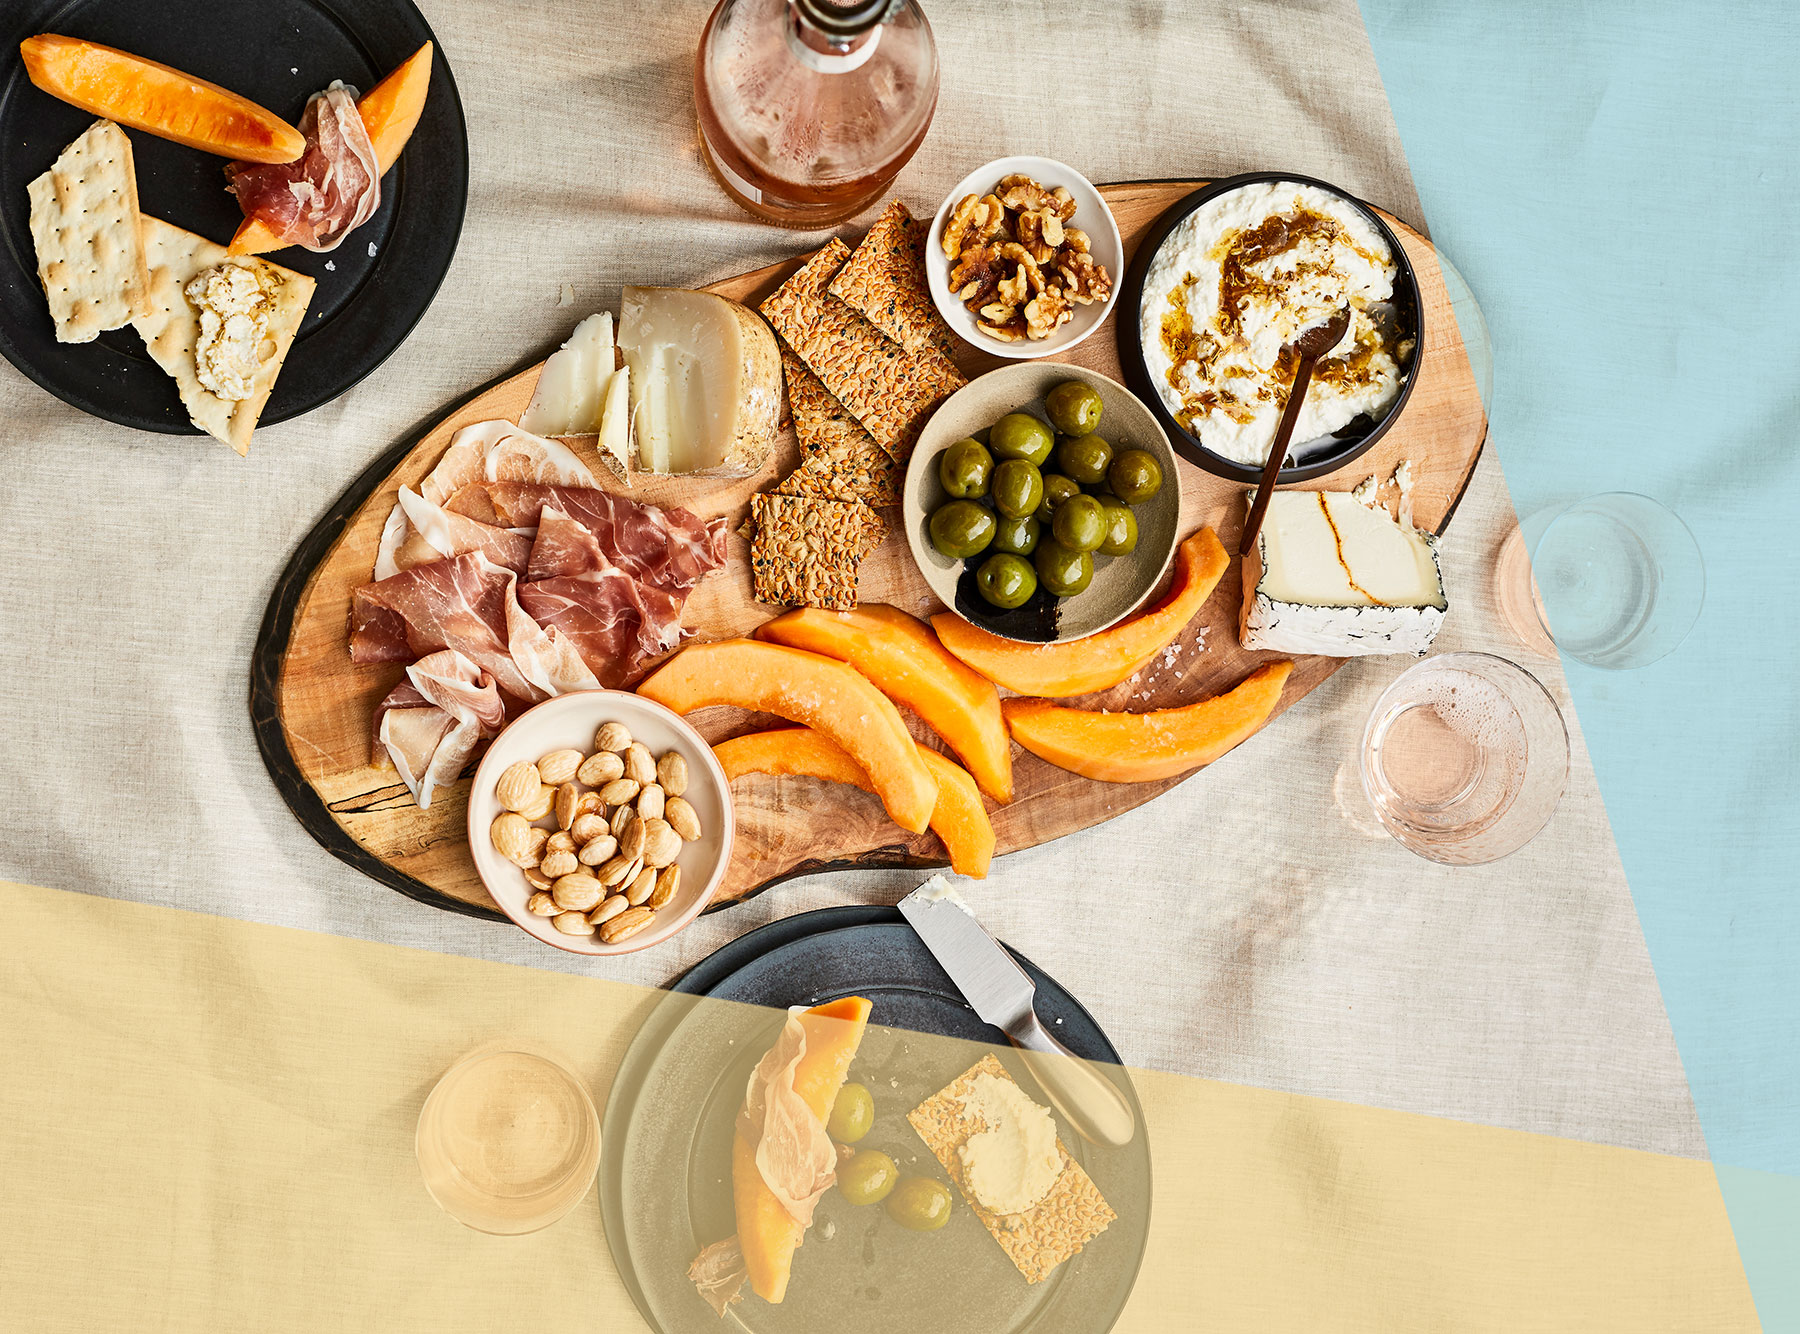 These Pretty Grazing Platters Are the Secret to Easy, Breezy Summer Entertaining